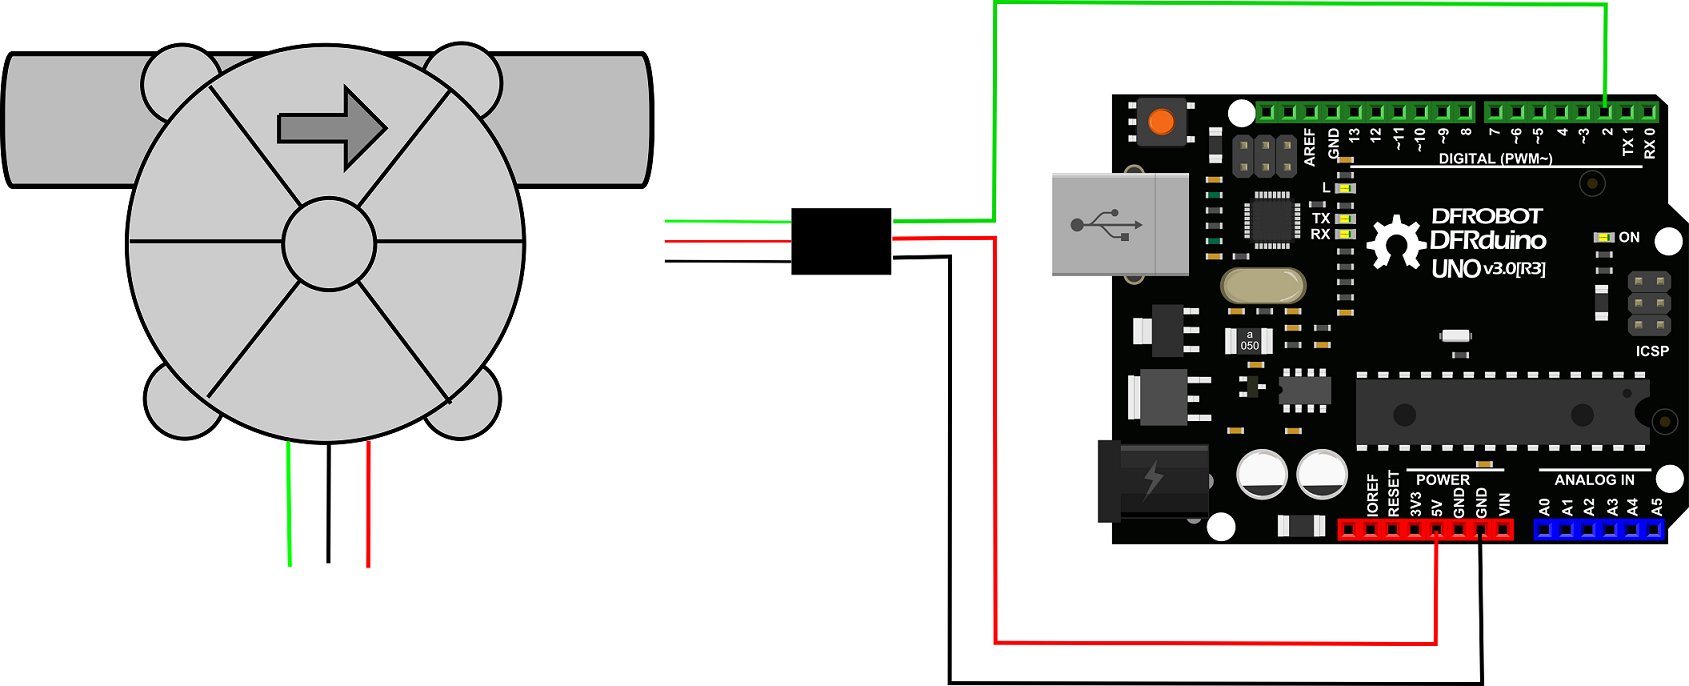 Ld4p120x Duct Detector Wiring Diagram Auto Electrical Motor Whirlpool 285222 Smoke Alarms In